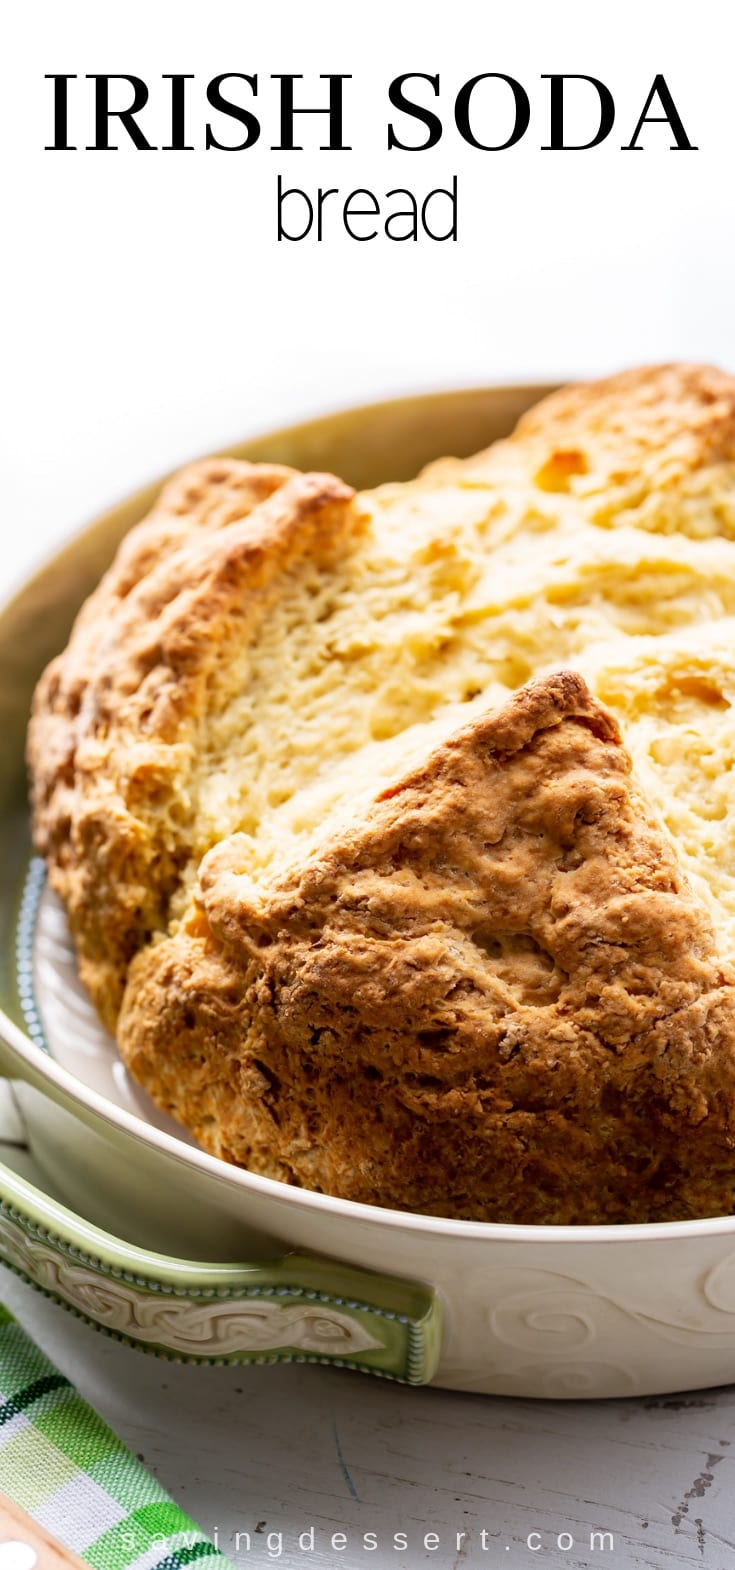 Classic Irish Soda Bread is one of the easiest, most rewarding quick breads you can make at home! With a delicious golden crust and soft chewy texture. #irishsodabread #bread #irish #sodabread #classicirishsodabread #baking